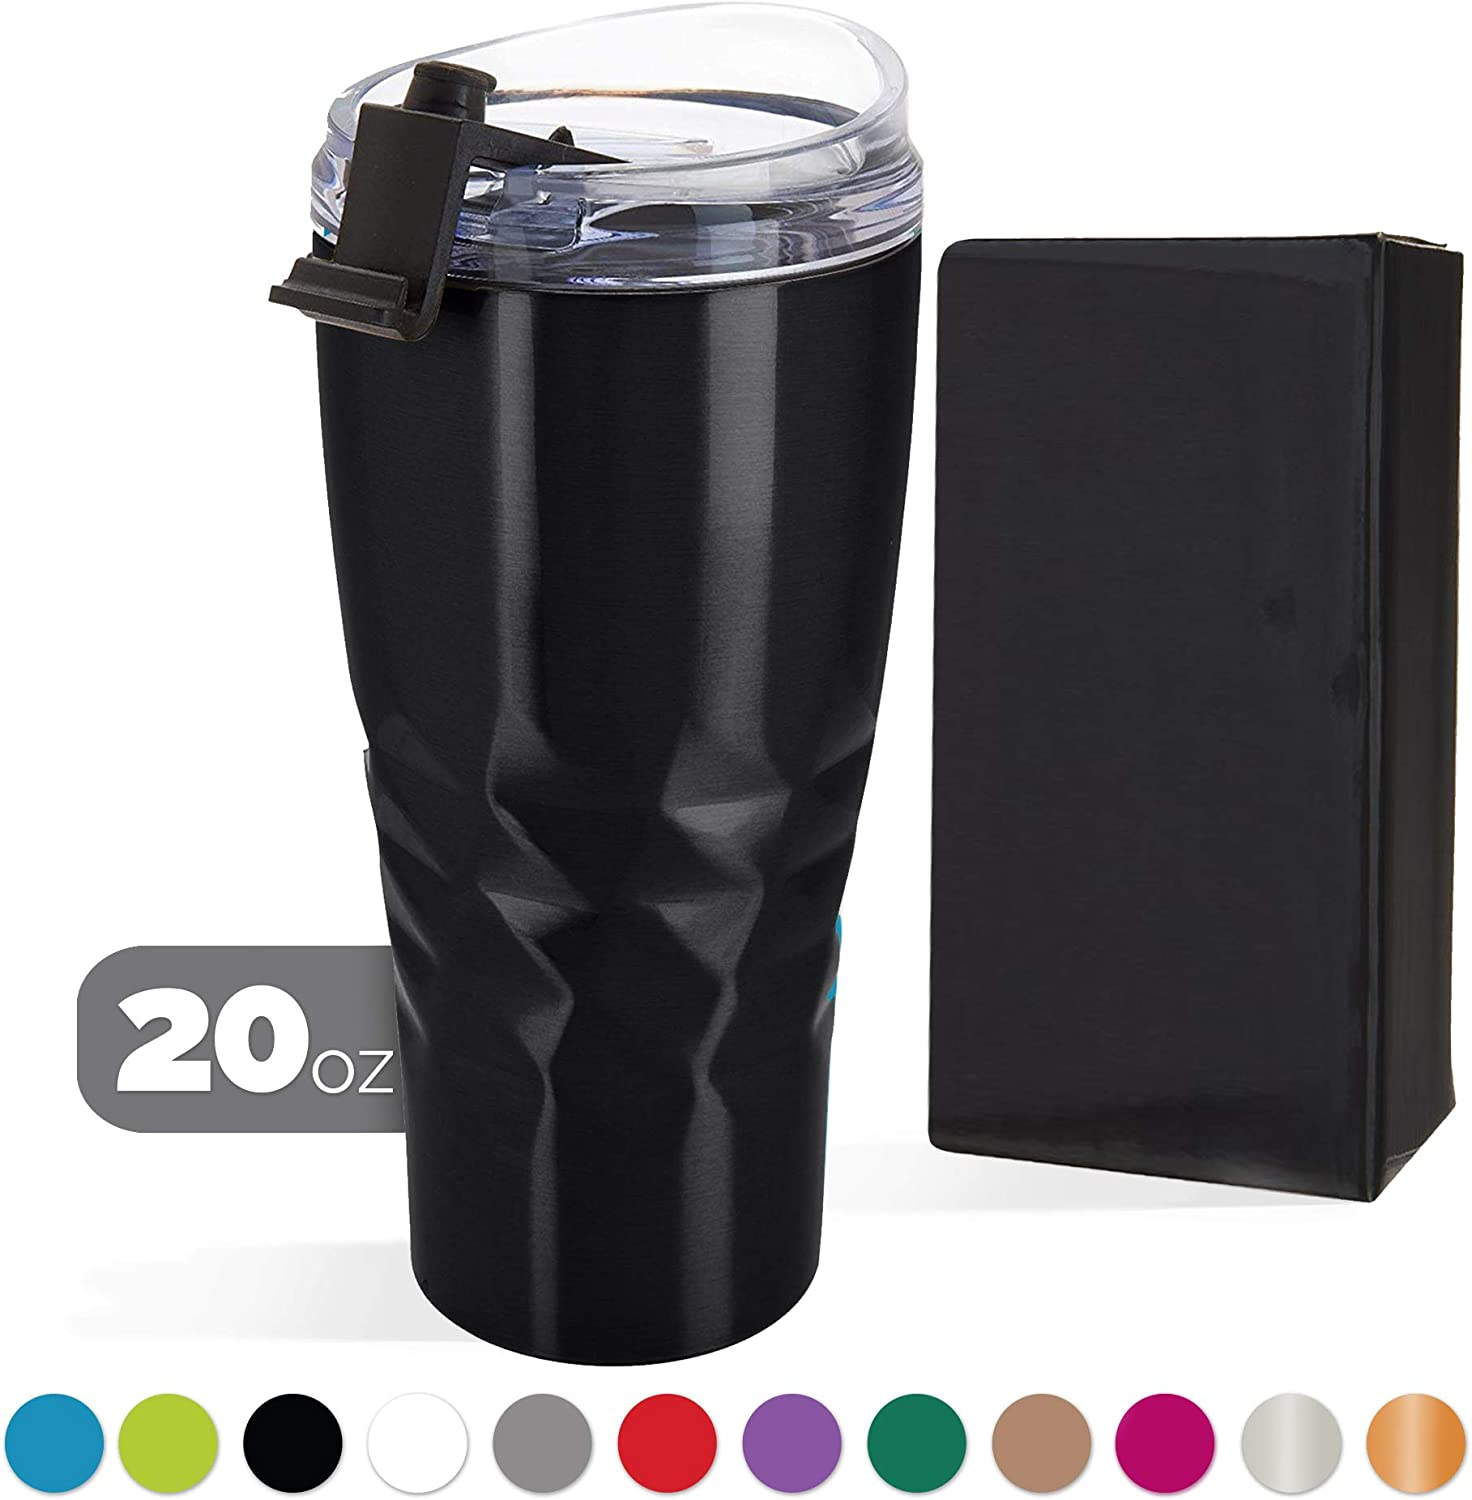 Primula Peak Hot or Cold Vacuum Sealed Triple Layer Copper Technology Tumbler with Matching Color Gift Box, 20 Ounce, Black